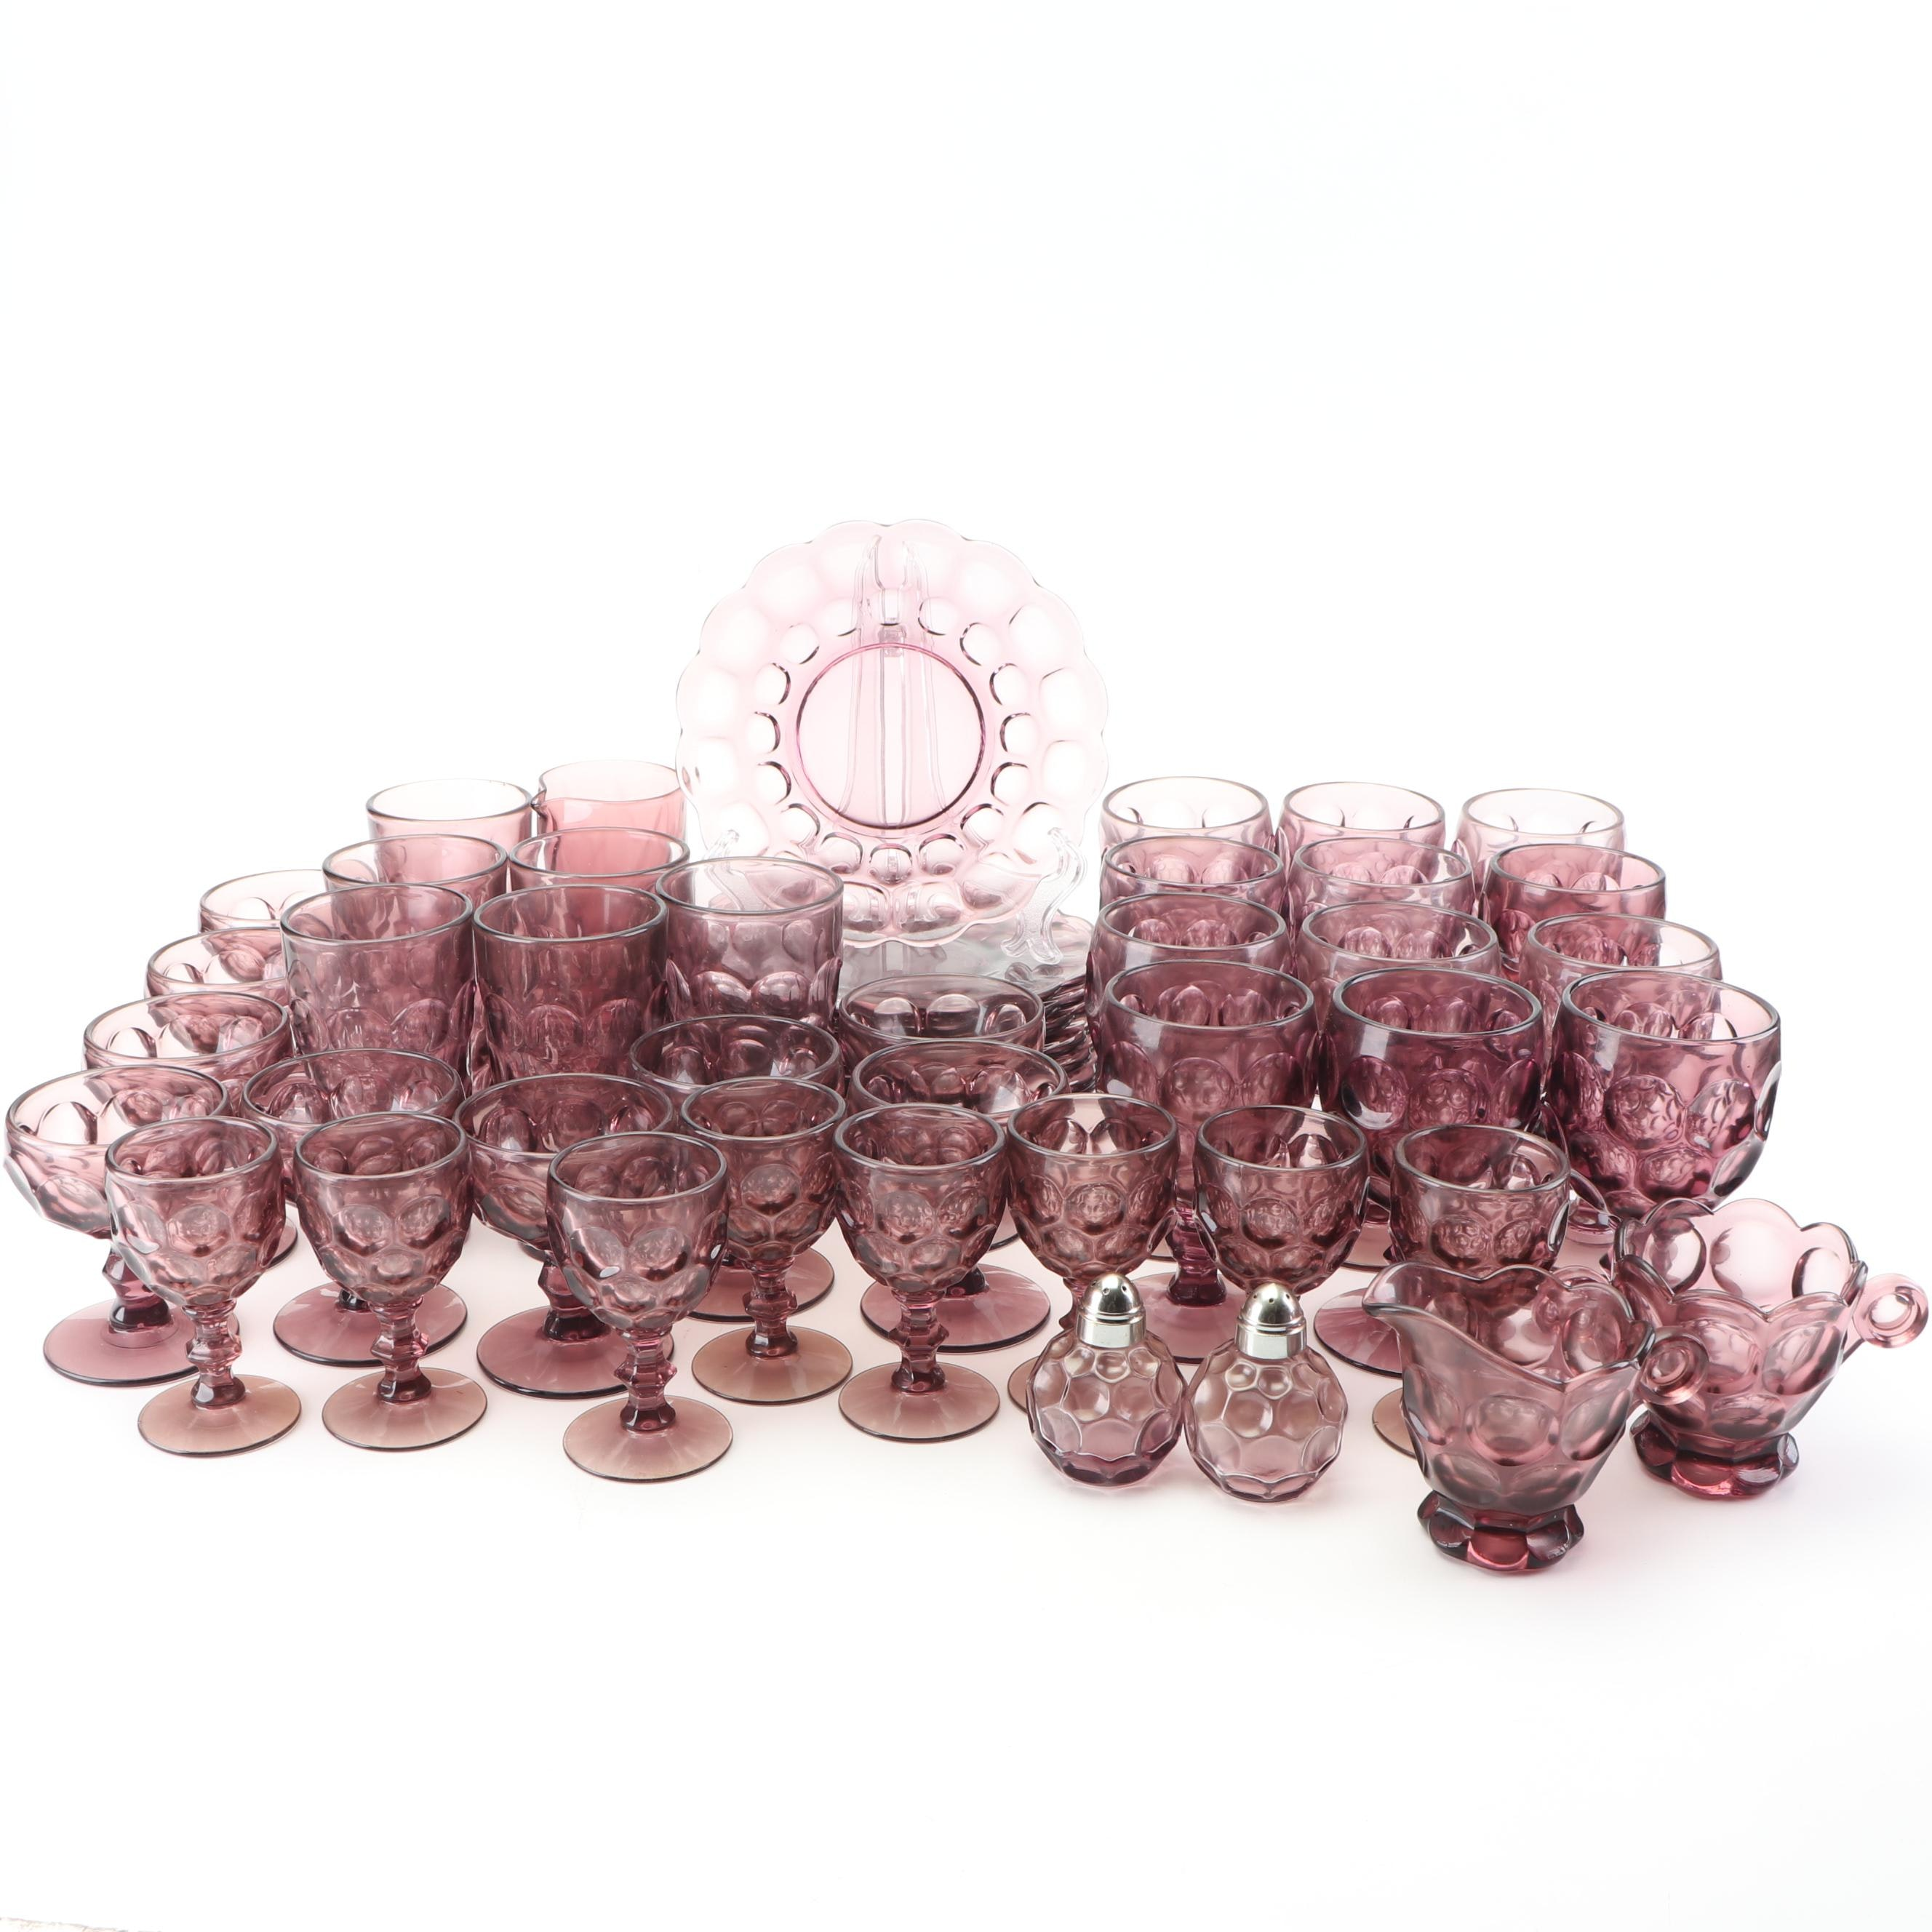 "Heisey Glass ""Whirlpool Amethyst"" and other Dinnerware  , c 1930s-1960s"